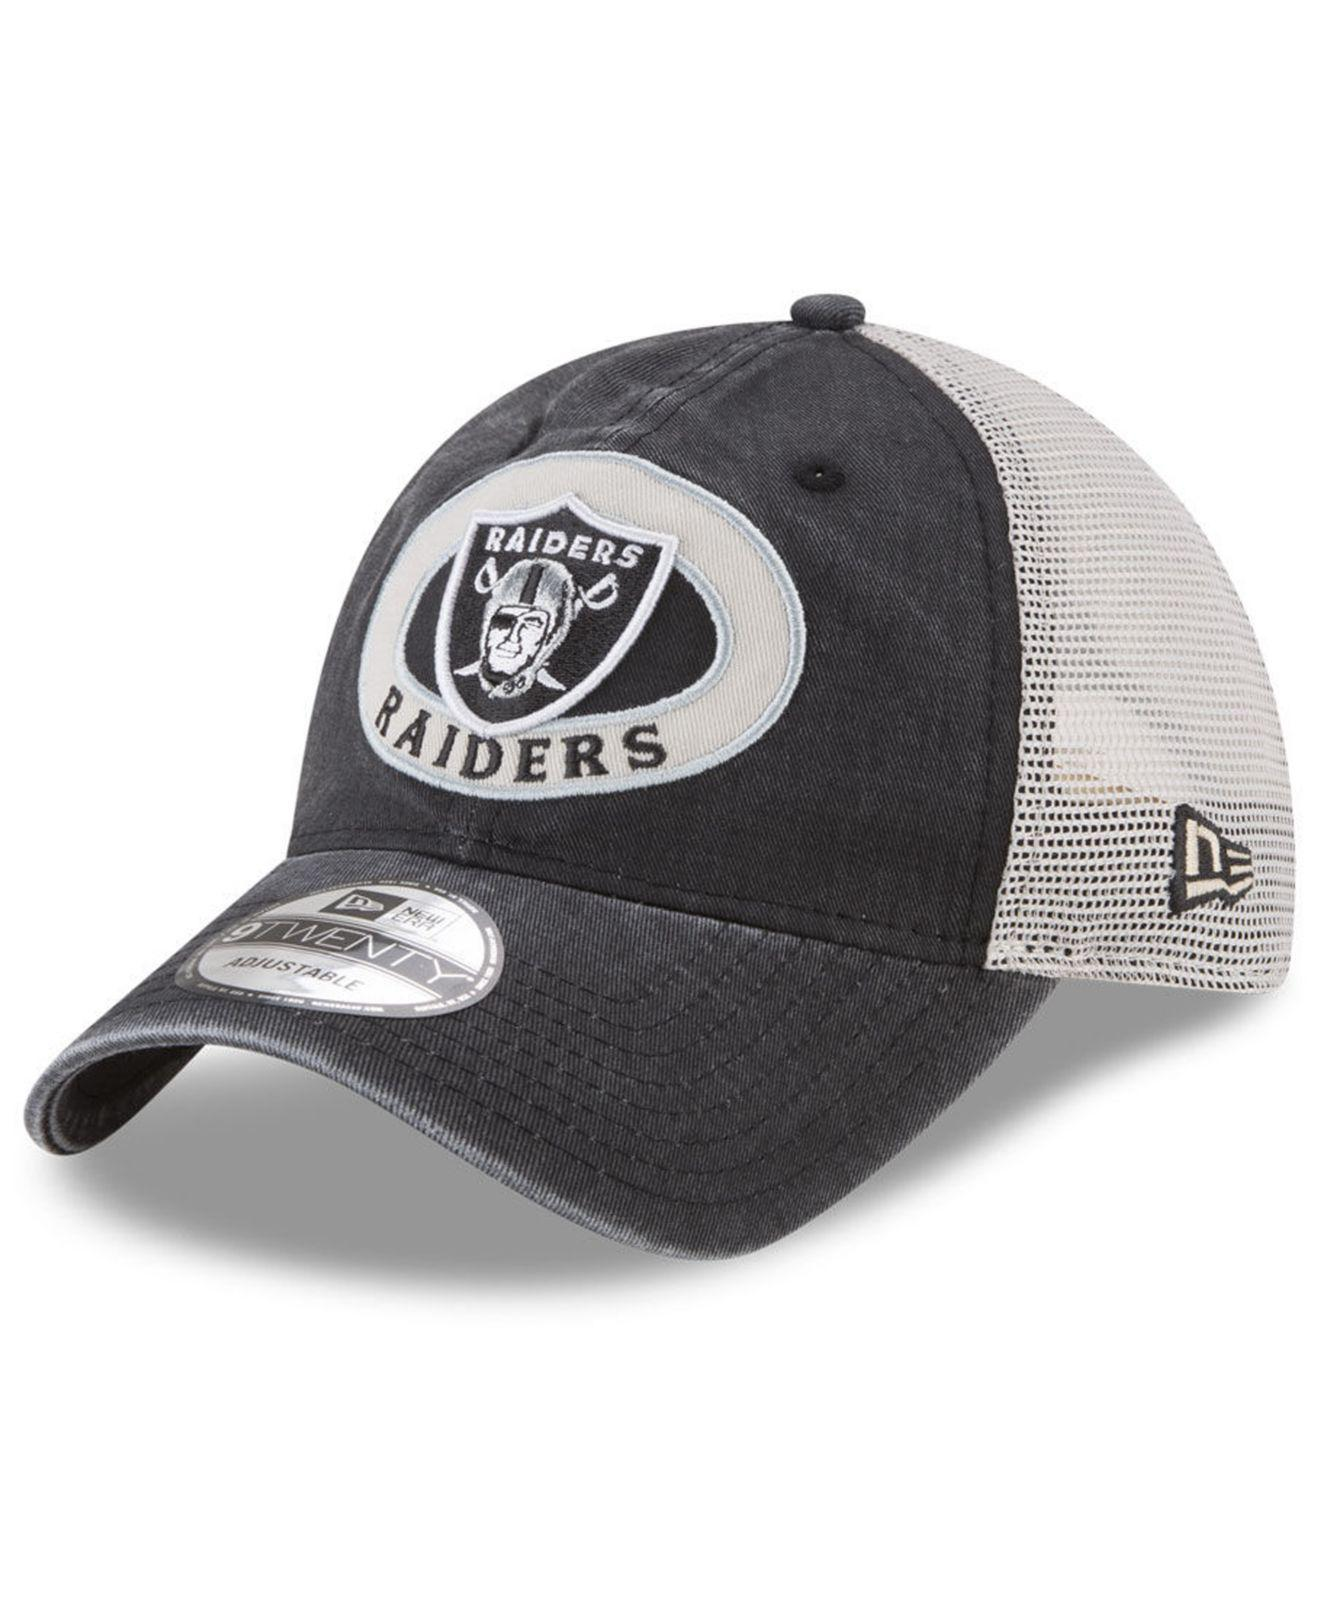 Lyst - Ktz Oakland Raiders Patched Pride 9twenty Cap in Black for Men 0668752c4a01